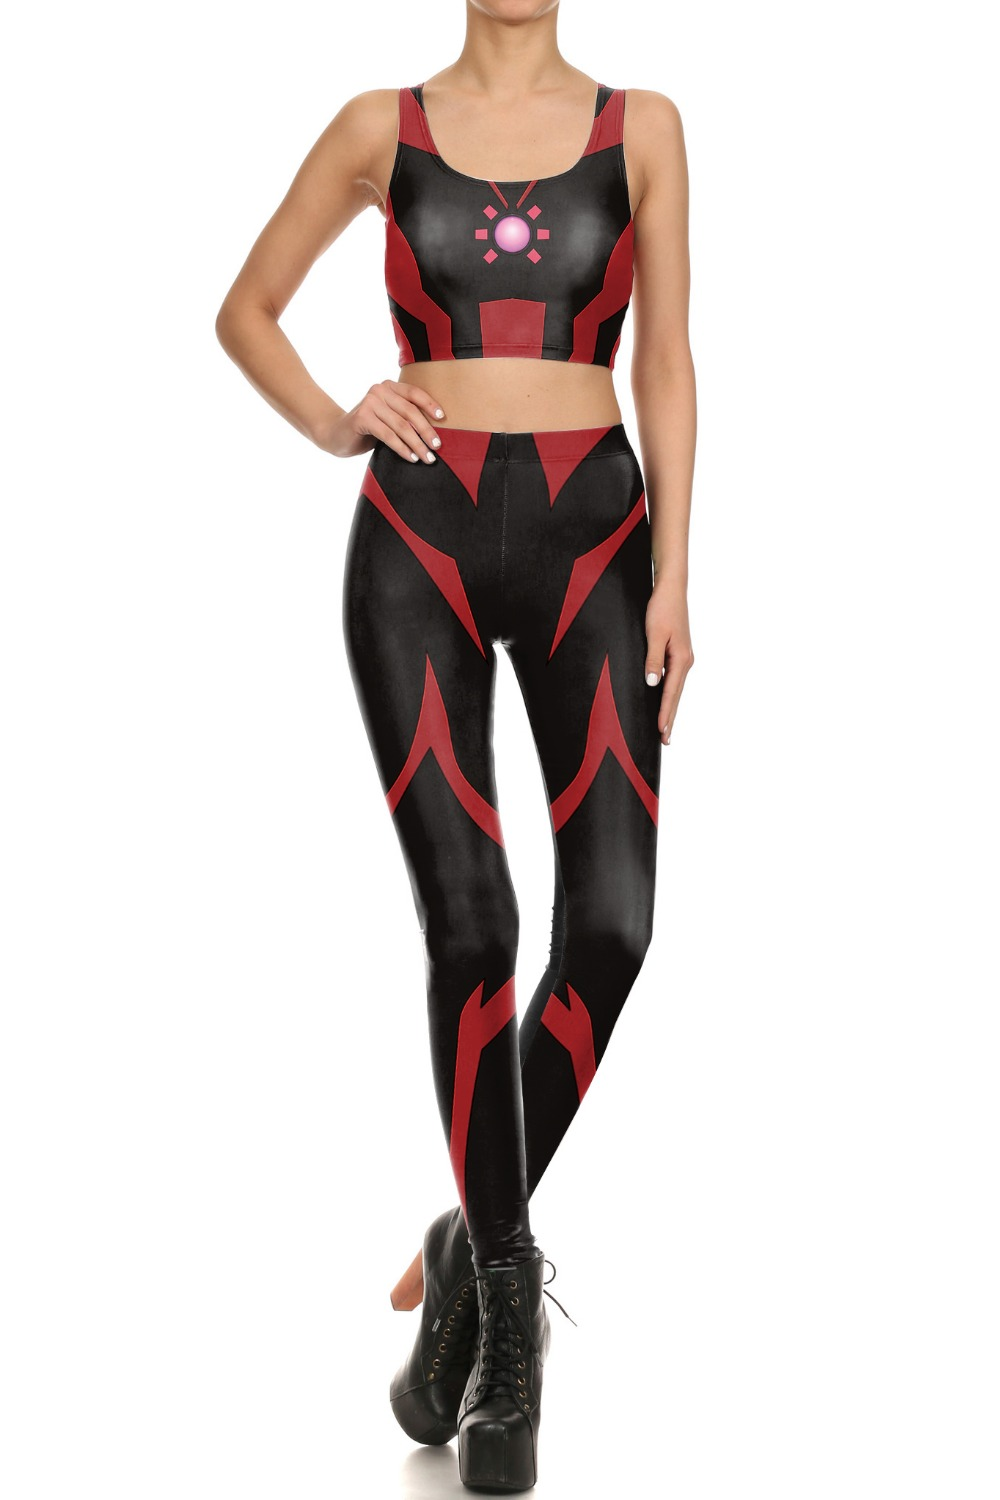 red and black striped leggings - Popular Red And Black Striped Leggings-Buy Cheap Red And Black